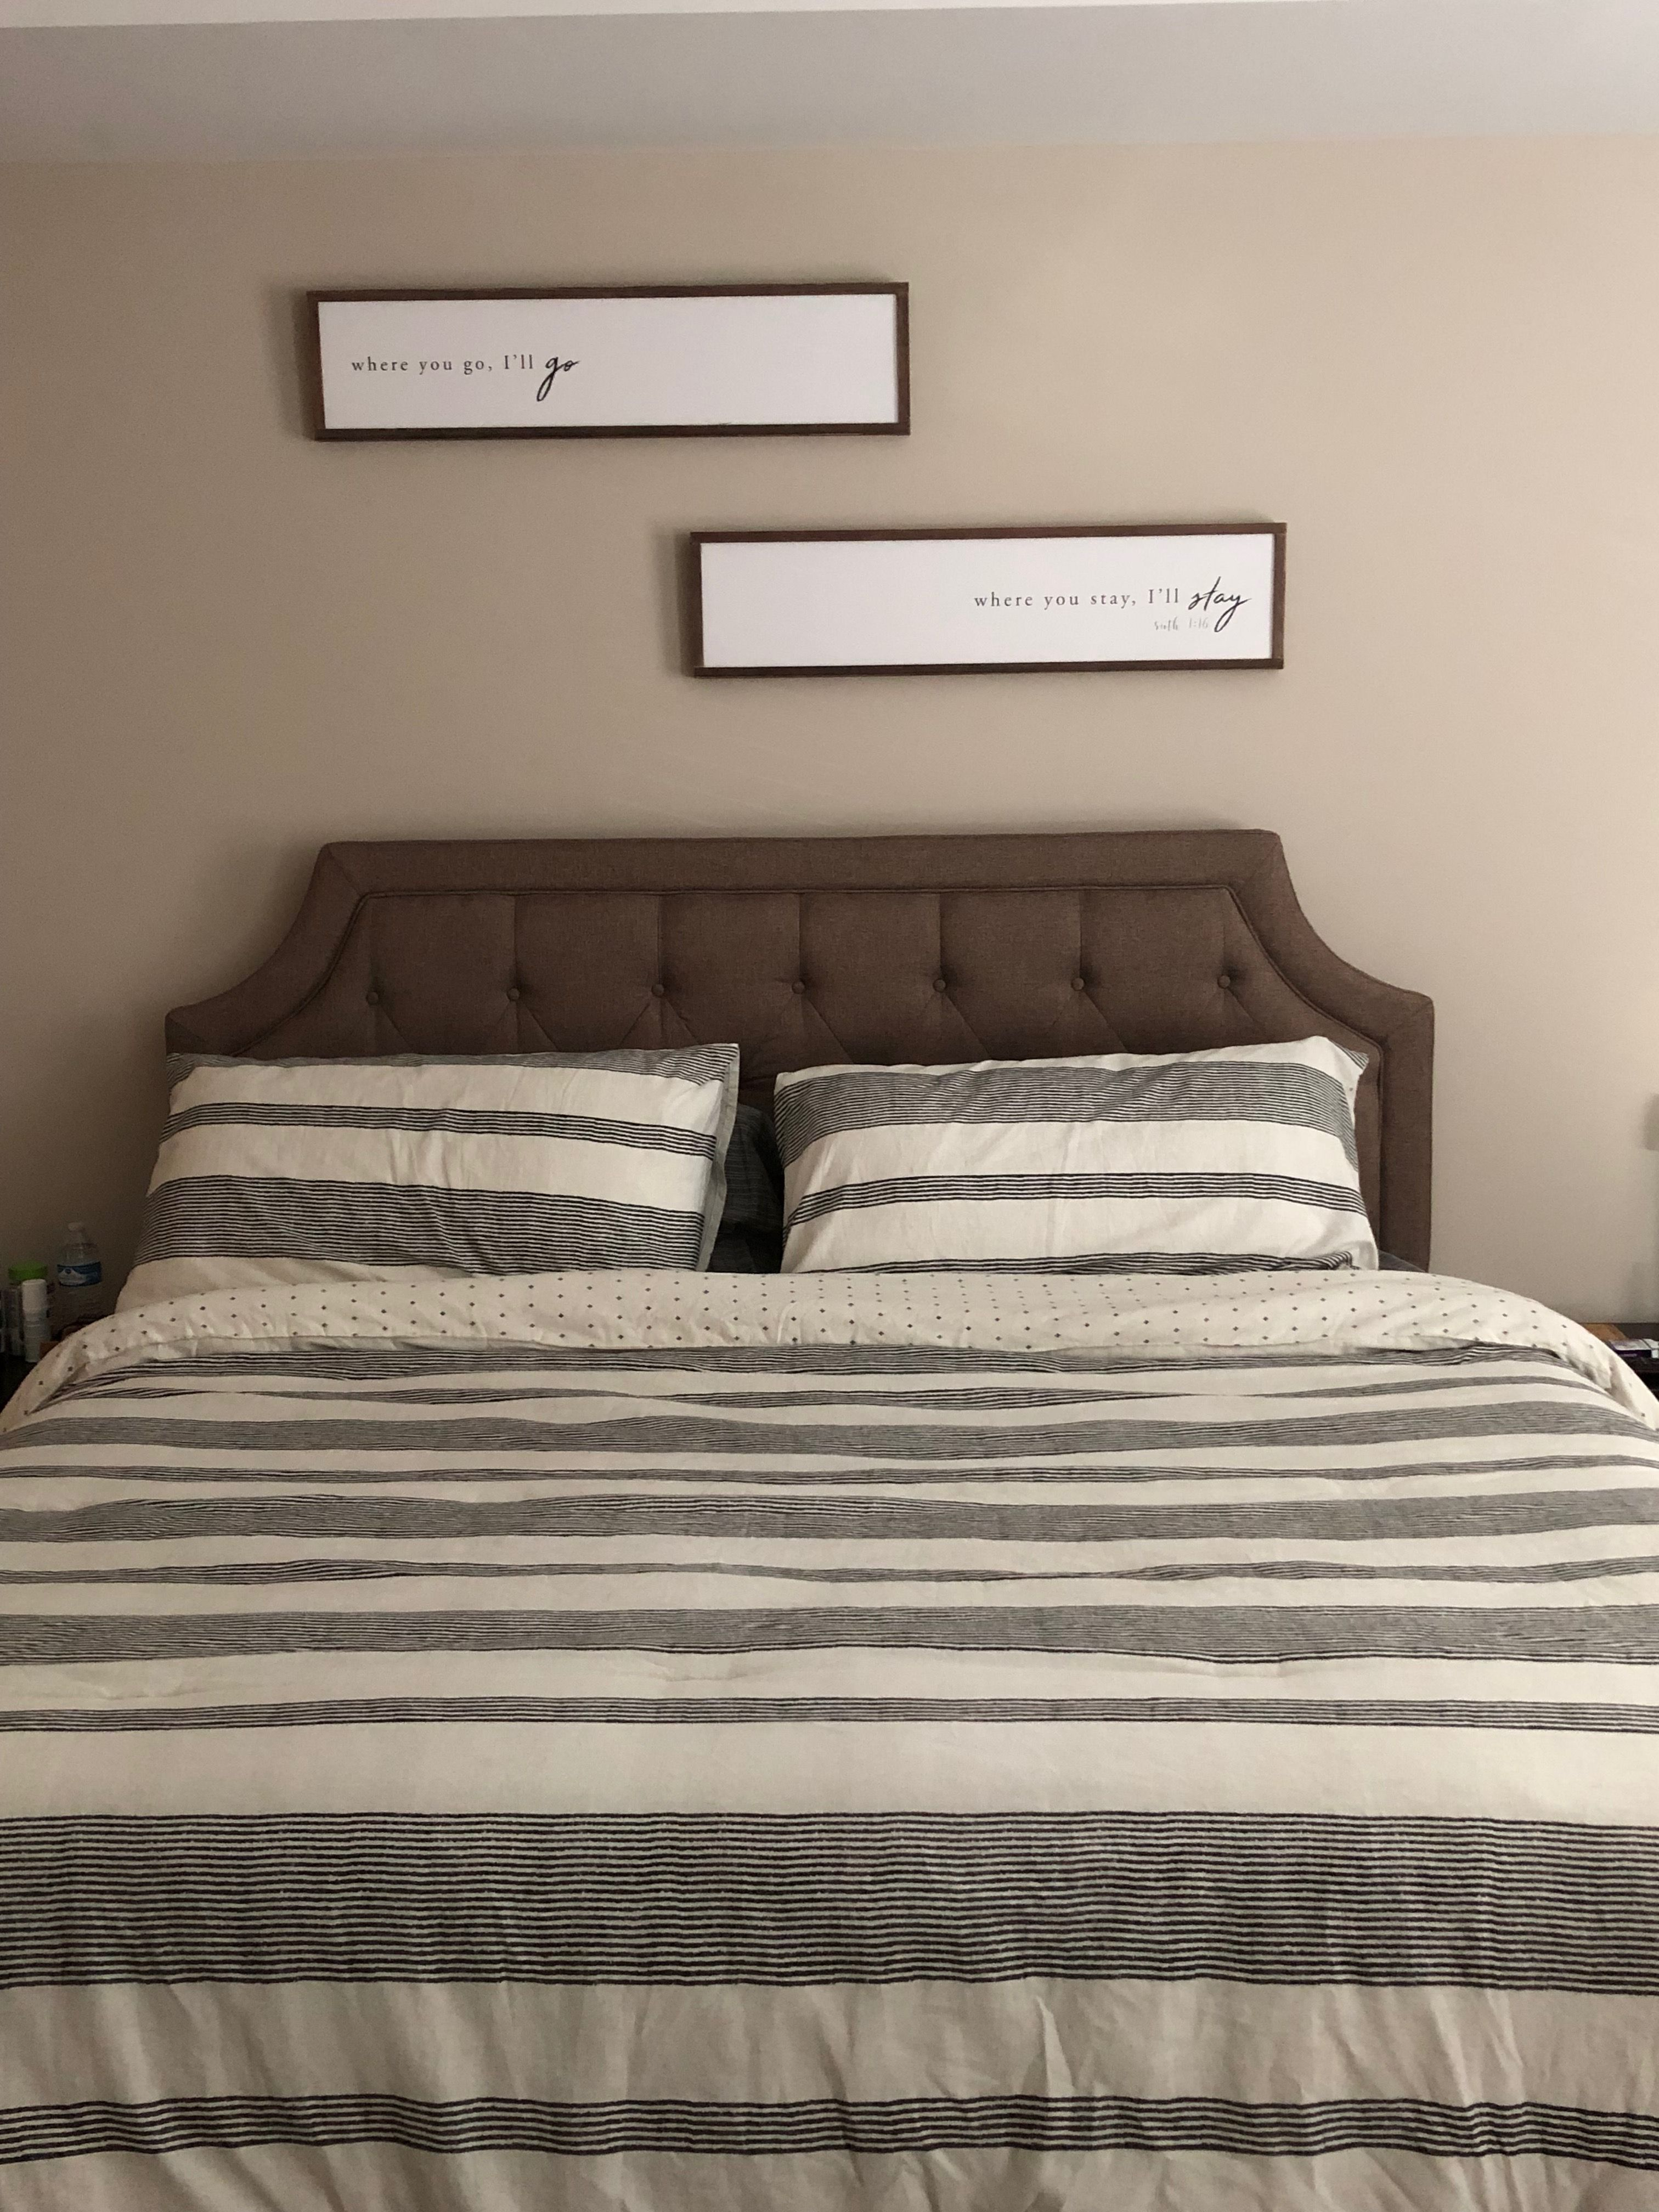 Elements Of Design Texture In The Bedding Can Be Felt Or Visually